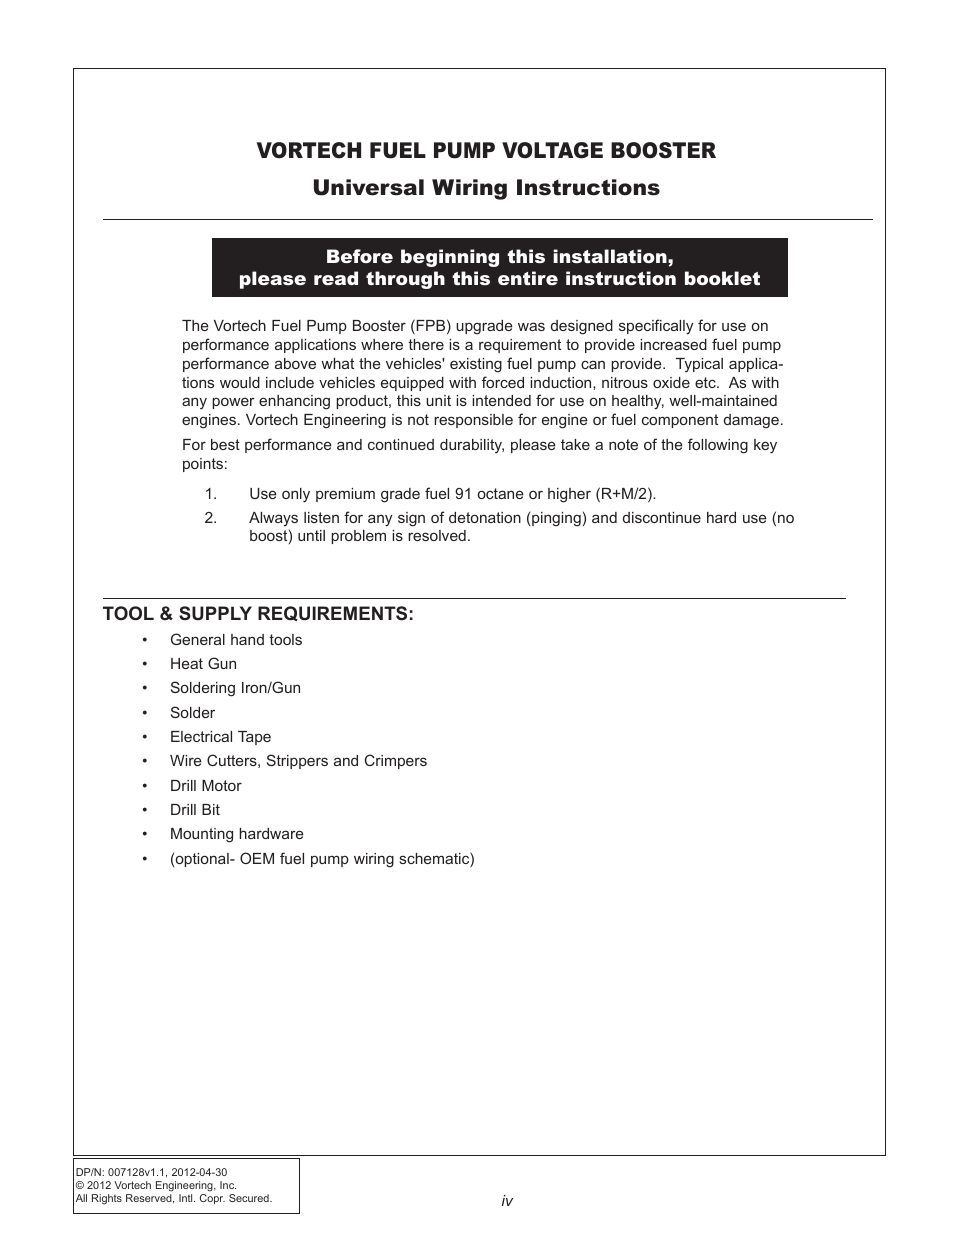 hight resolution of vortech maxflo fuel pump booster fpb universal fit user manual page 4 13